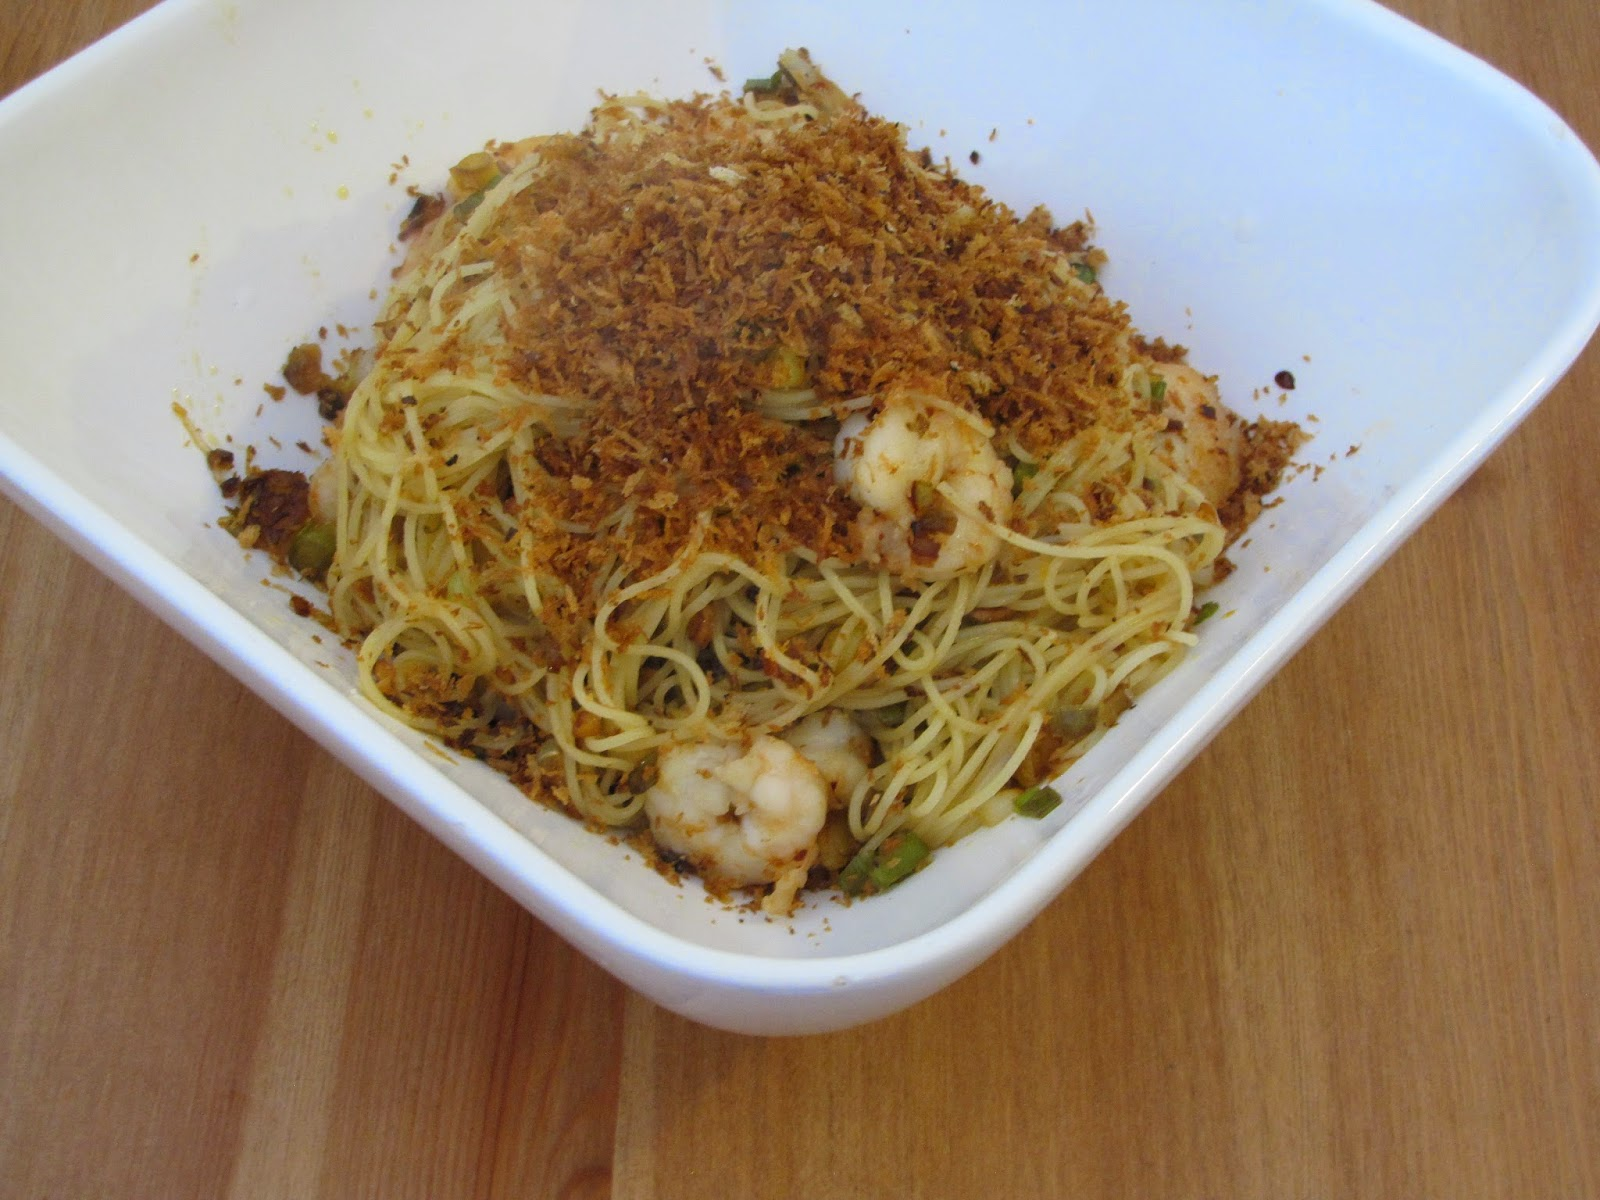 Garlicky Pasta With Shrimp Topped with Crunchy Panko Breadcrumbs in a white rectangular bowl